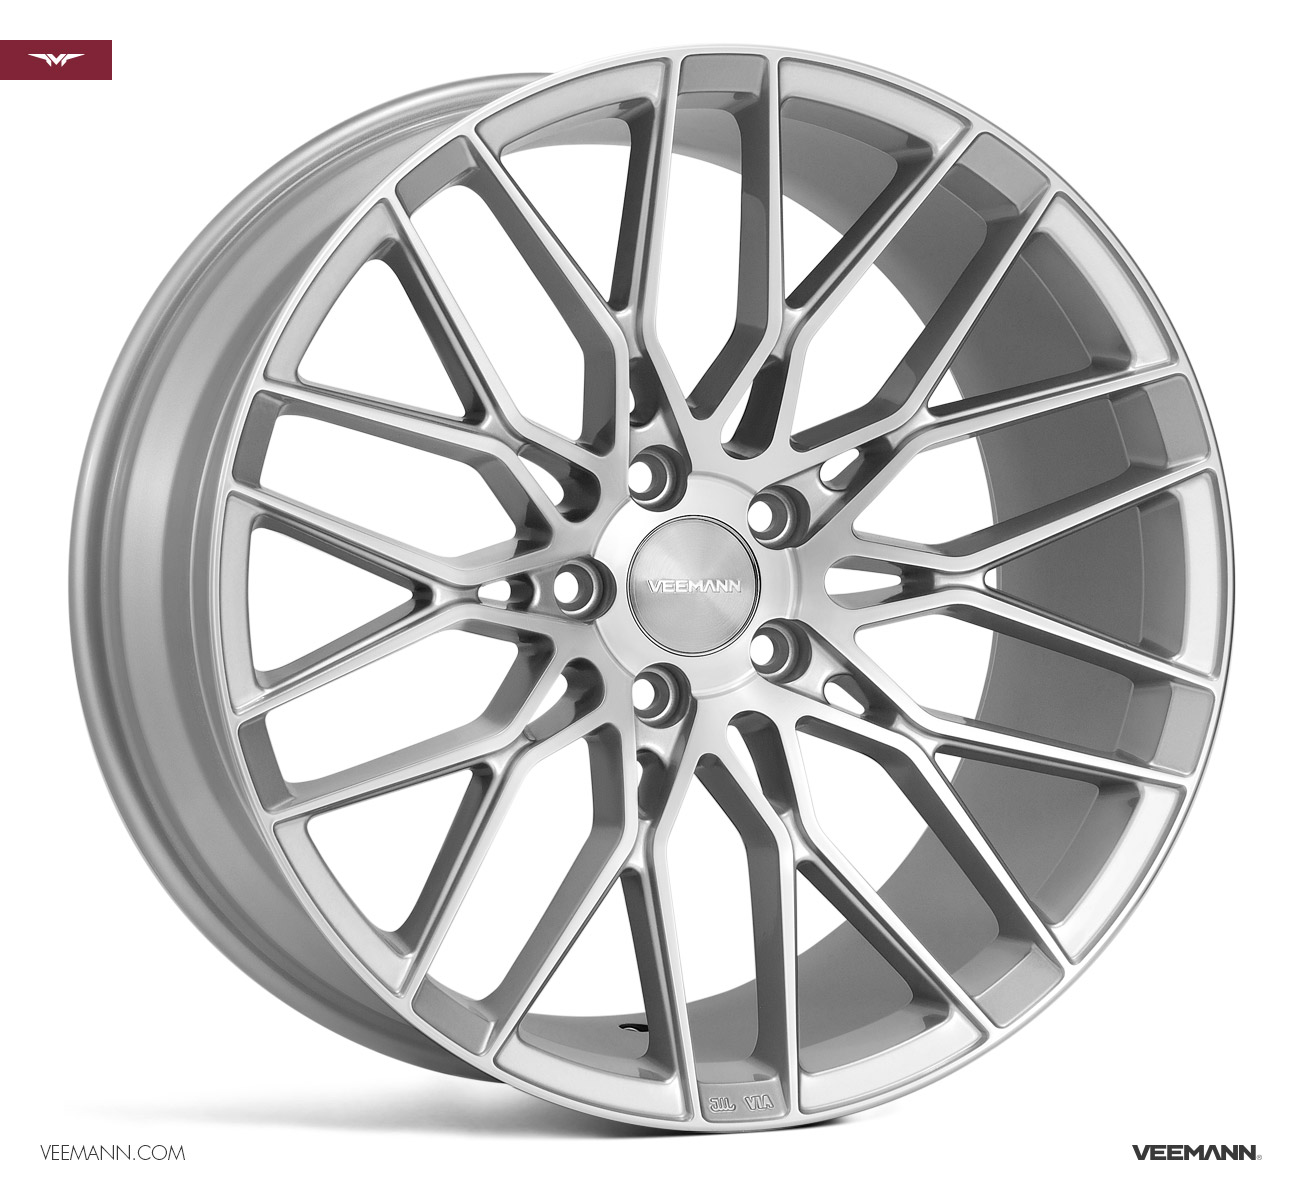 "NEW 20"" VEEMANN V-FS34 ALLOY WHEELS IN SILVER POL WITH WIDER 10"" REARS"